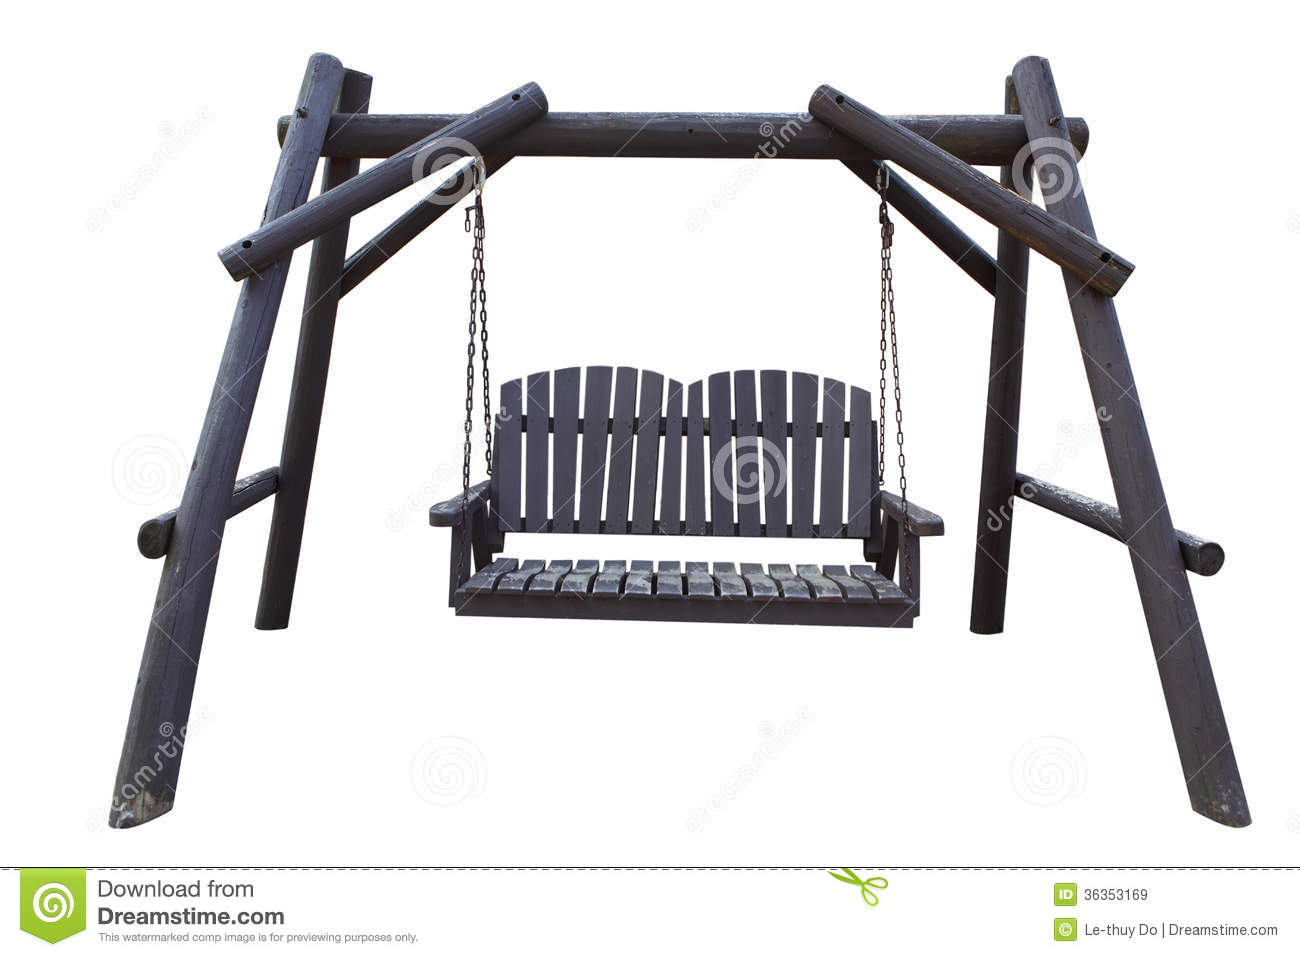 Front Porch Clipart wooden porch swing royalty free stock images - image: 36353169